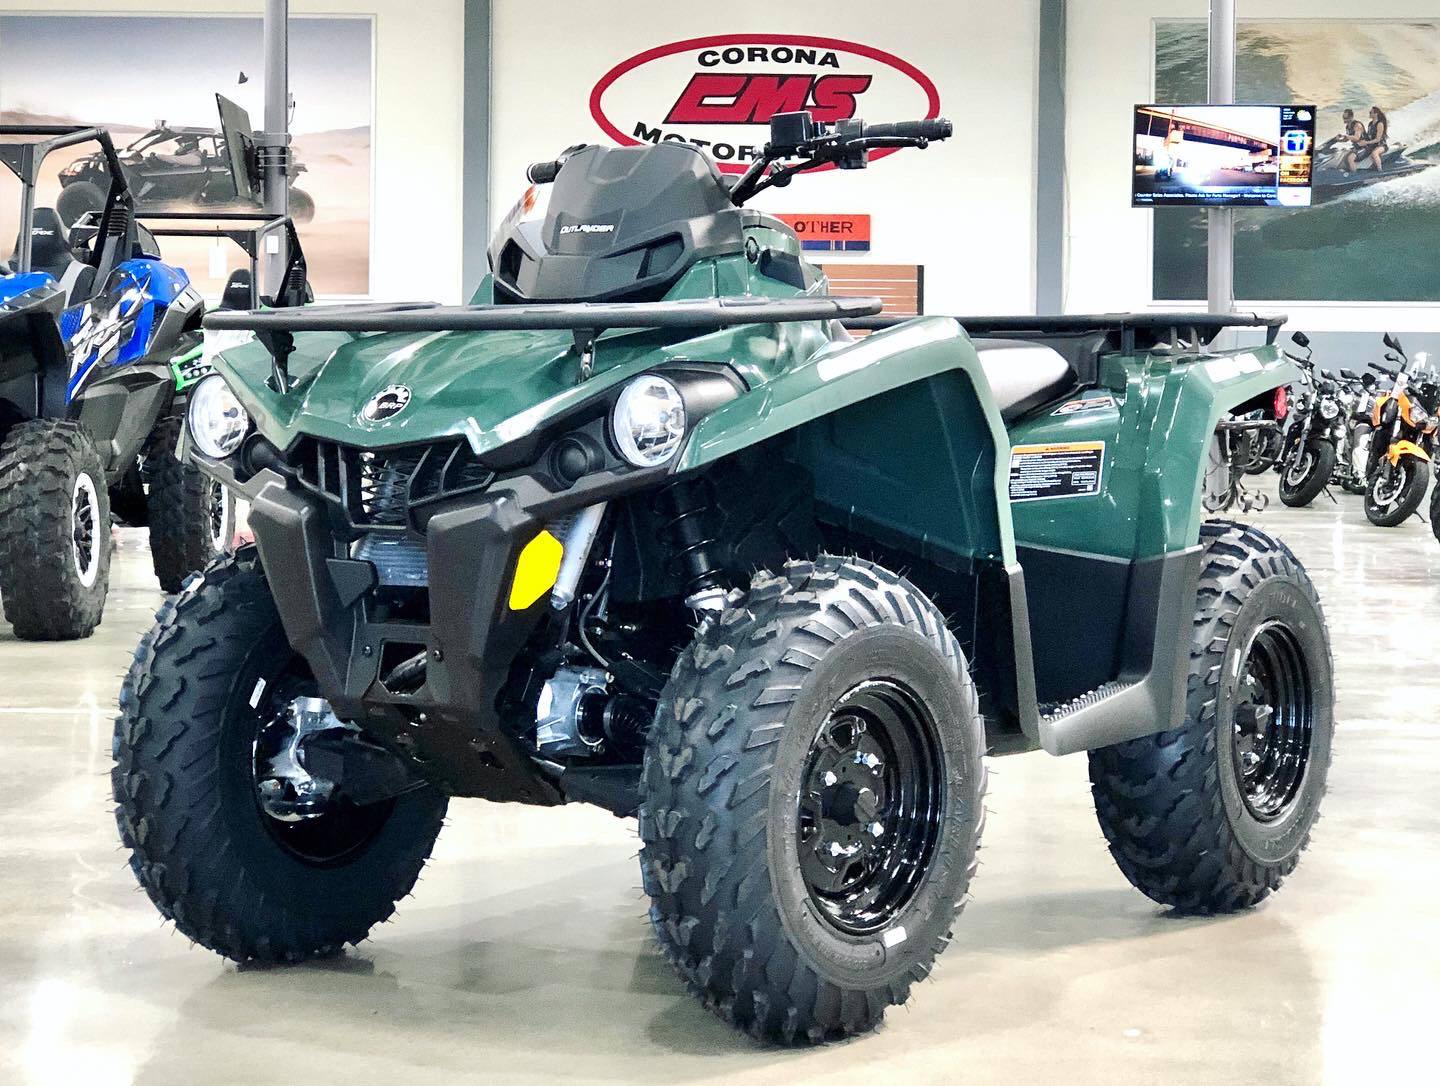 2021 Can-Am Outlander 450 in Corona, California - Photo 1